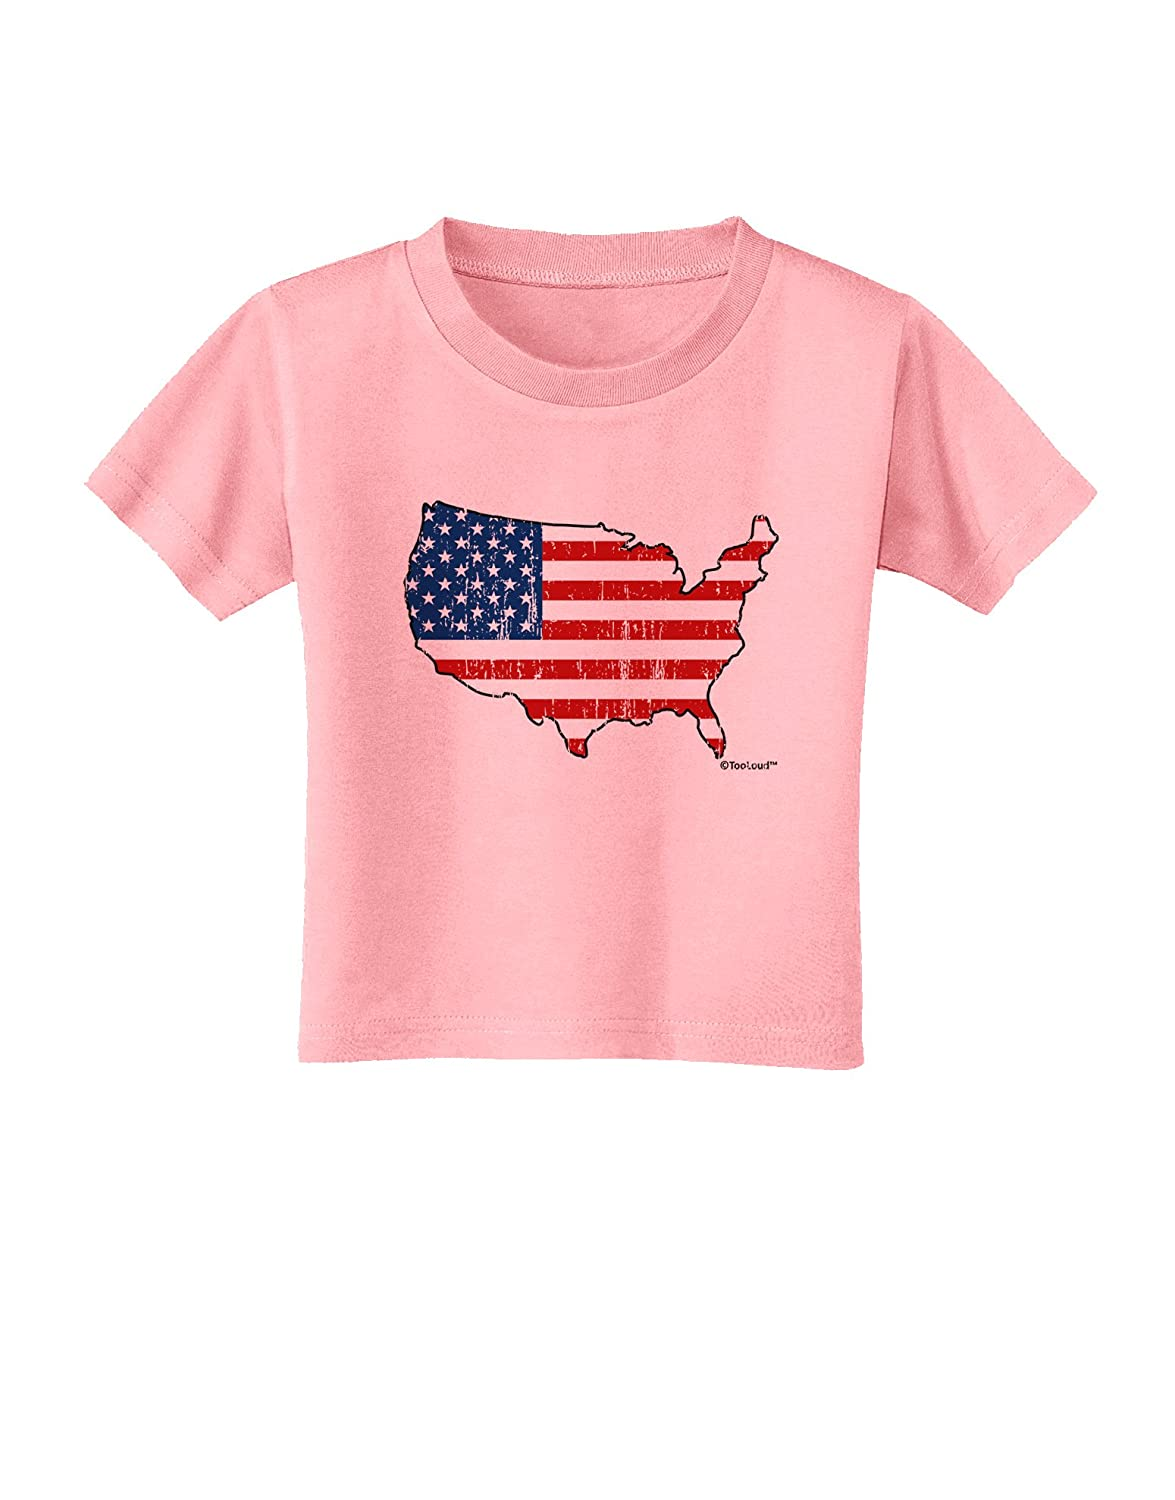 TooLoud United States Cutout American Flag Distressed Toddler T-Shirt